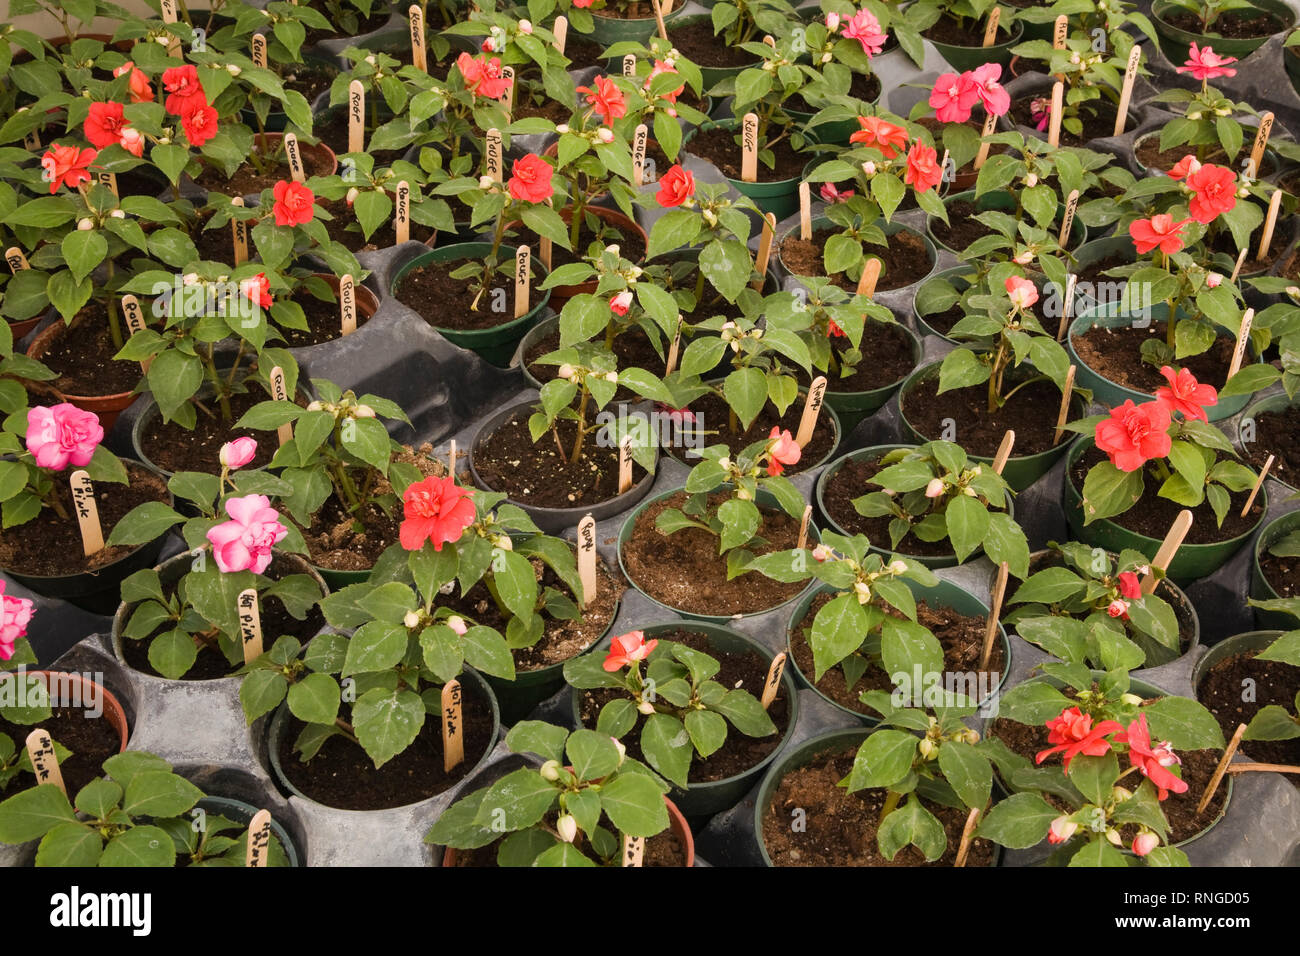 Young rose bush plants growing in plastic pots in a commercial greenhouse - Stock Image